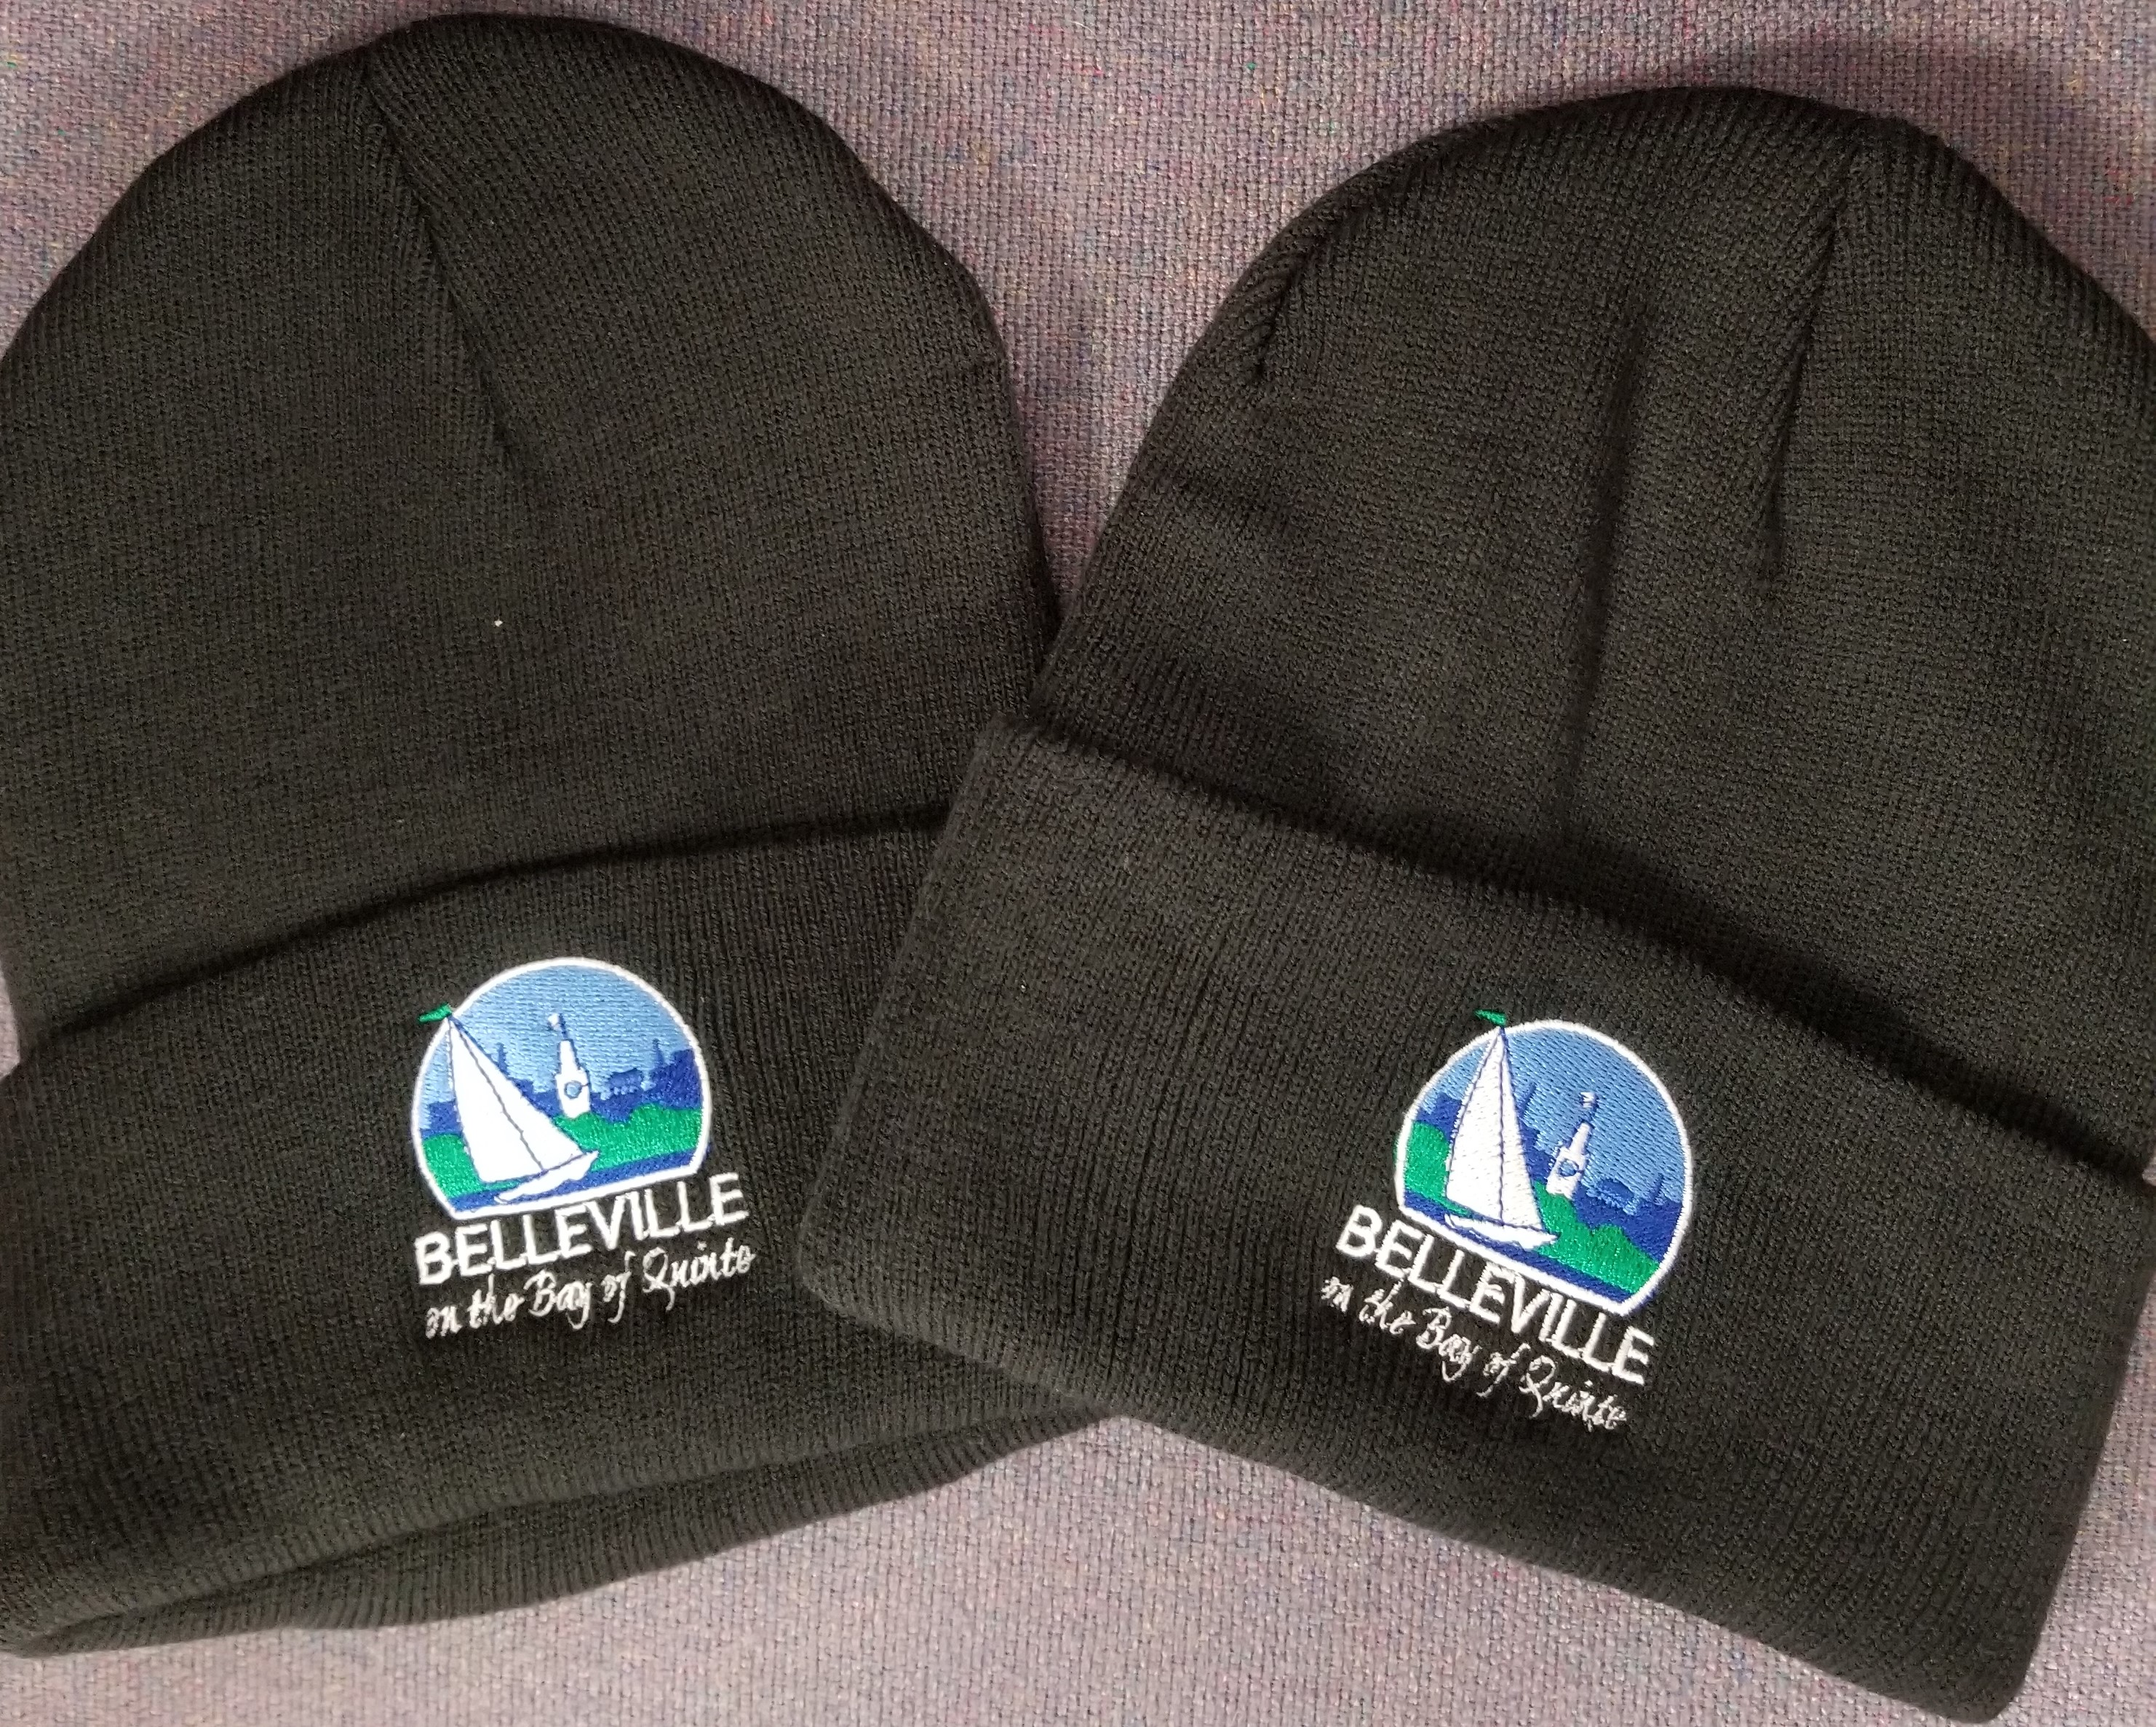 City of Belleville winter toques with the City logo on the front.